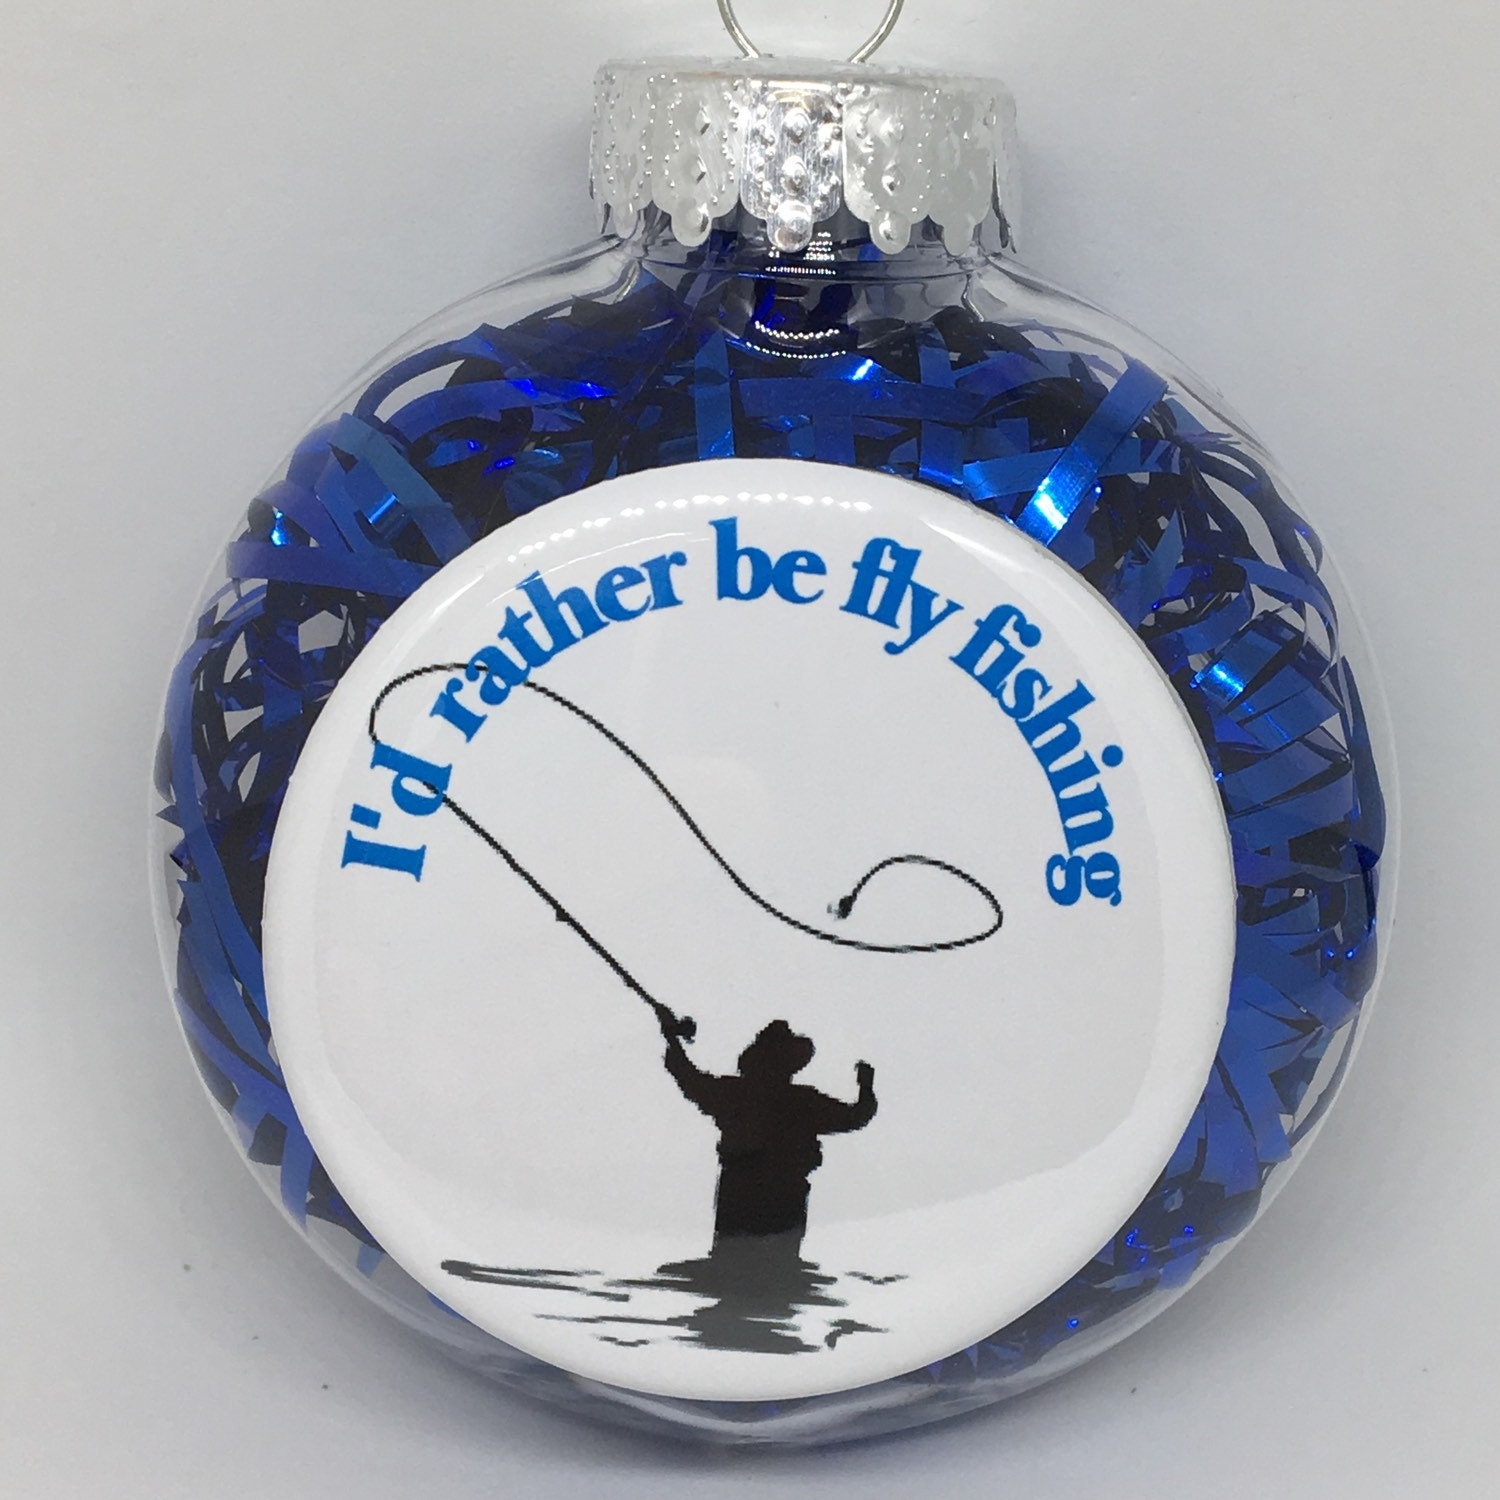 Fly Fishing Holiday Christmas Ornament Gift   Etsy